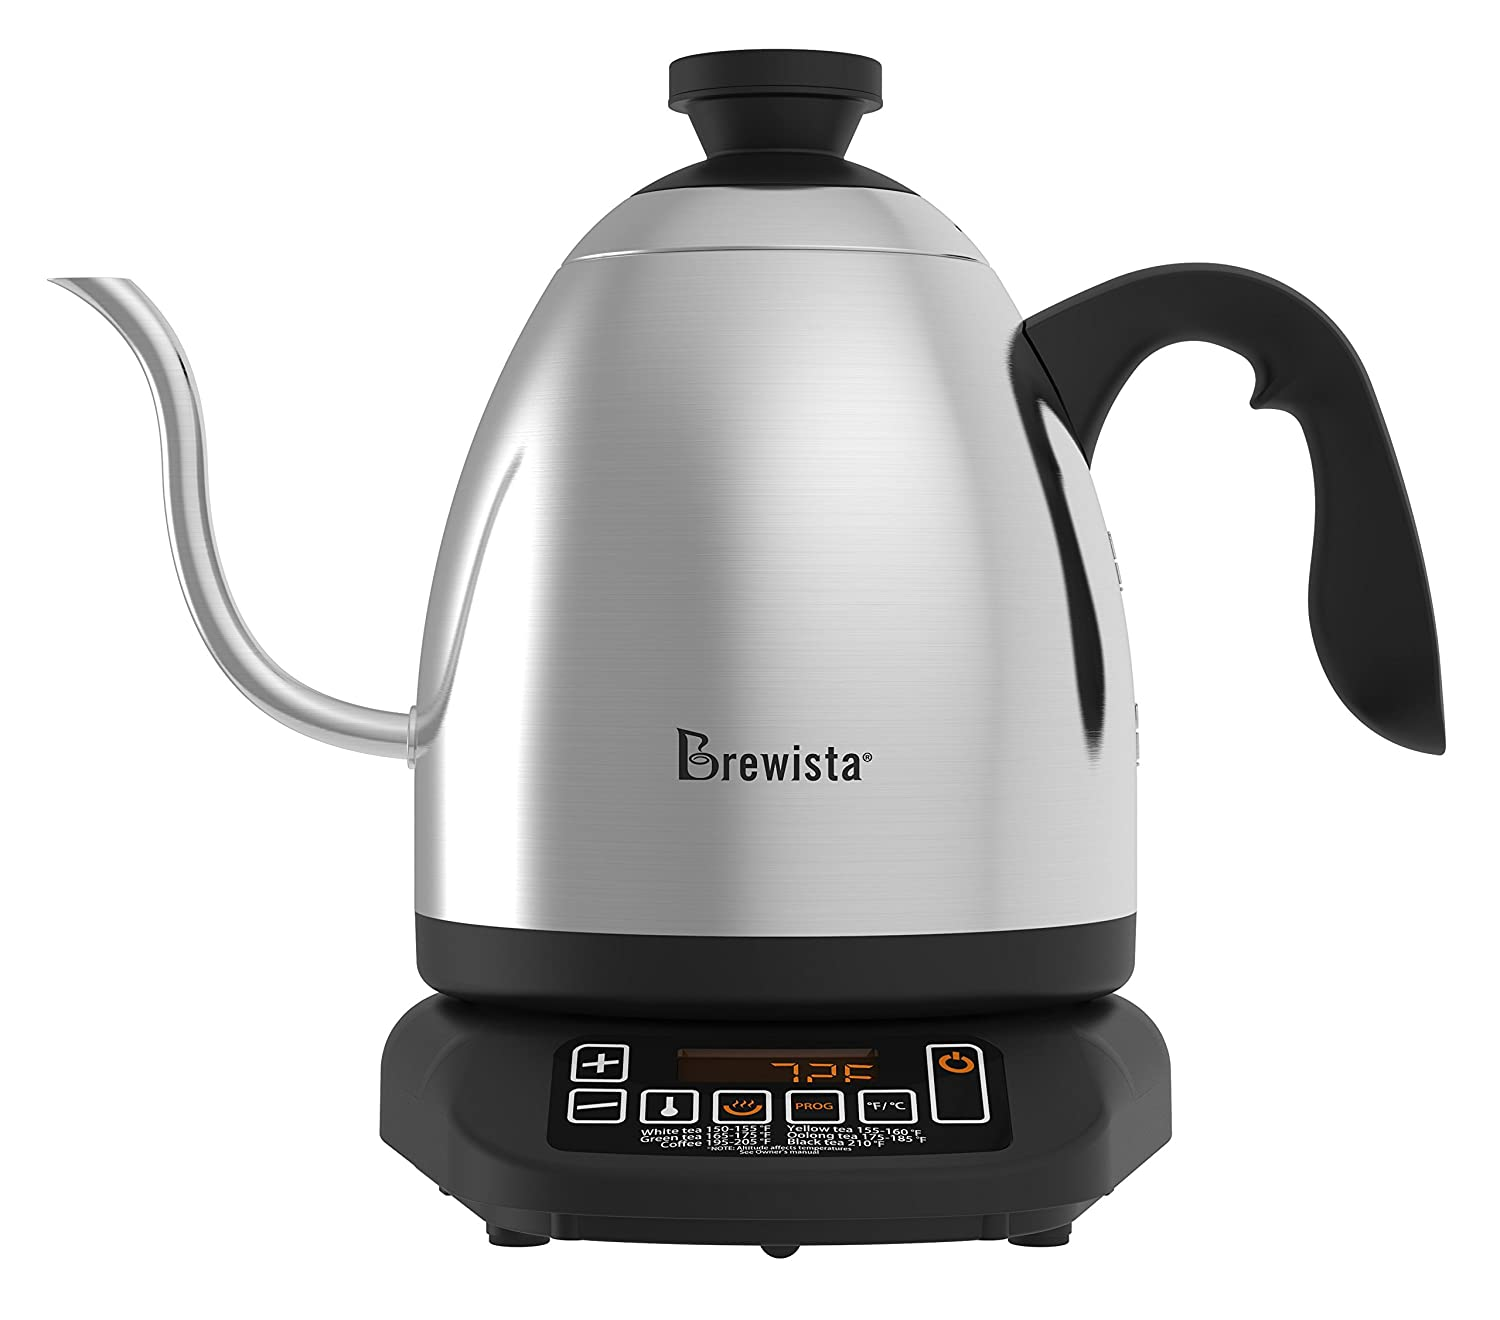 Brewista SmartPour Stovetop Cupping Kettle with Analog Temperature Gauge - 1.2L BKS12S01G2TG